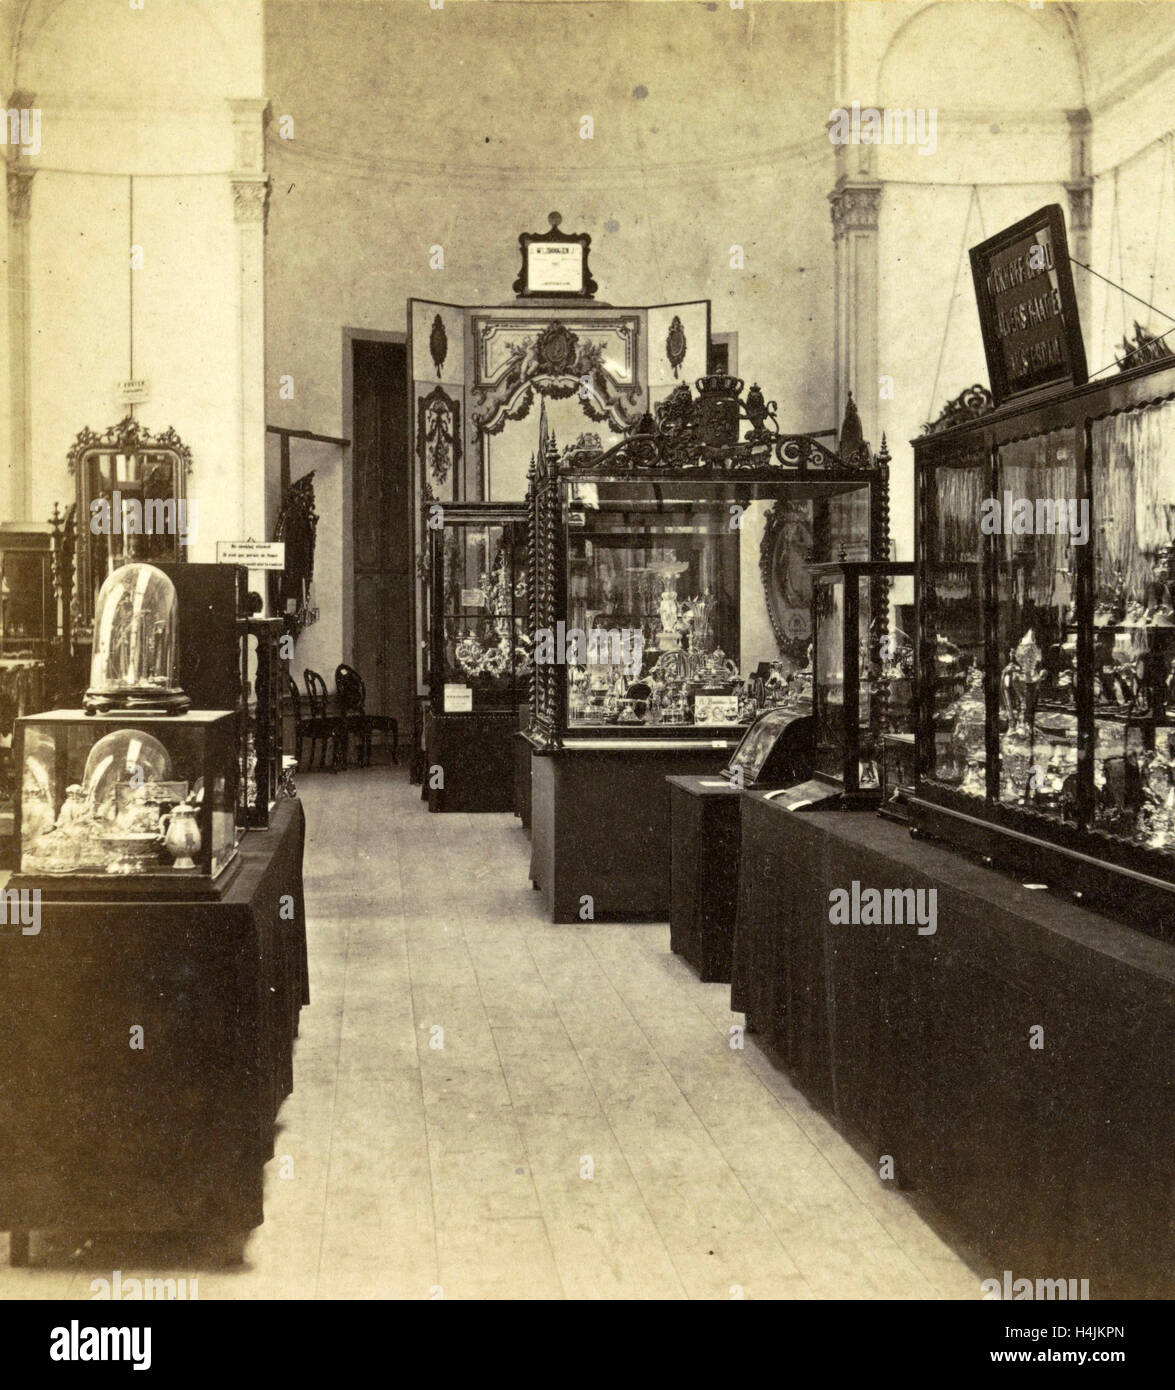 Display cabinets with objects in the exhibition of National Industry and Art in the Palace of Industry, Amsterdam Stock Photo